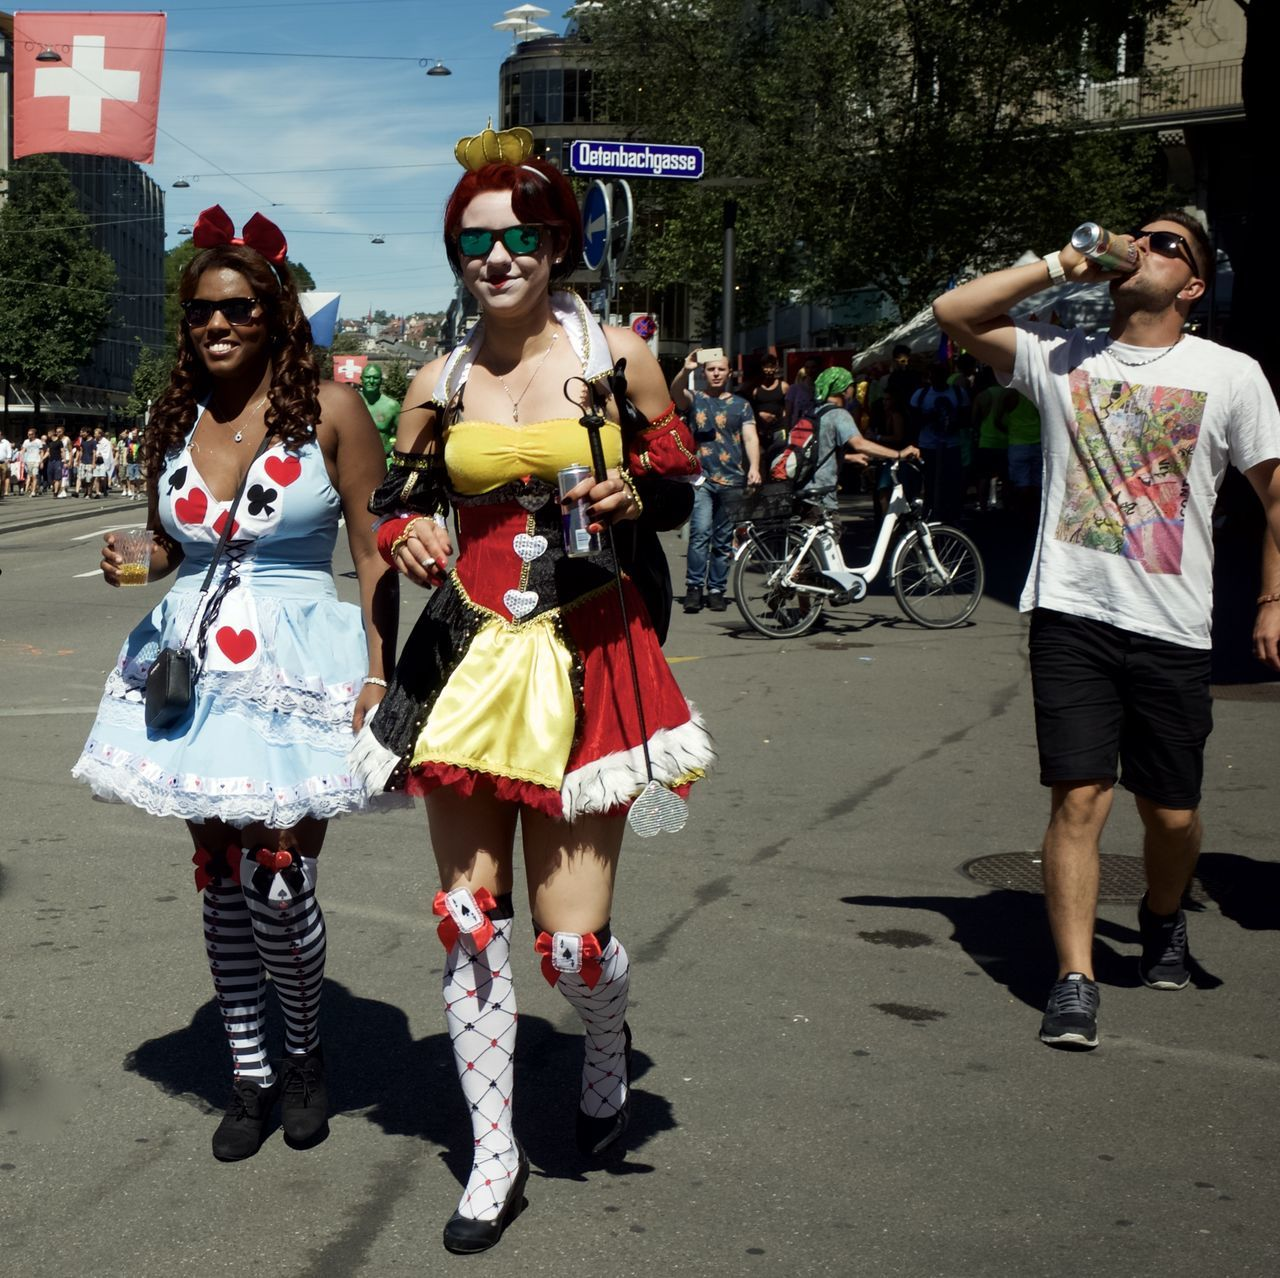 had a break to view to the people going to the street parade 2016 in Zürich Disguised Enjoying Life Enjoying The Sun Fun Funtimes Hello World Rave Raveparty Ricohgr2 Streetparade Zurich Streetparade2016 Sun-fun Switzerland_2016 Zürich Leisure Activity Festival Fever Festival Season Shaking Hips